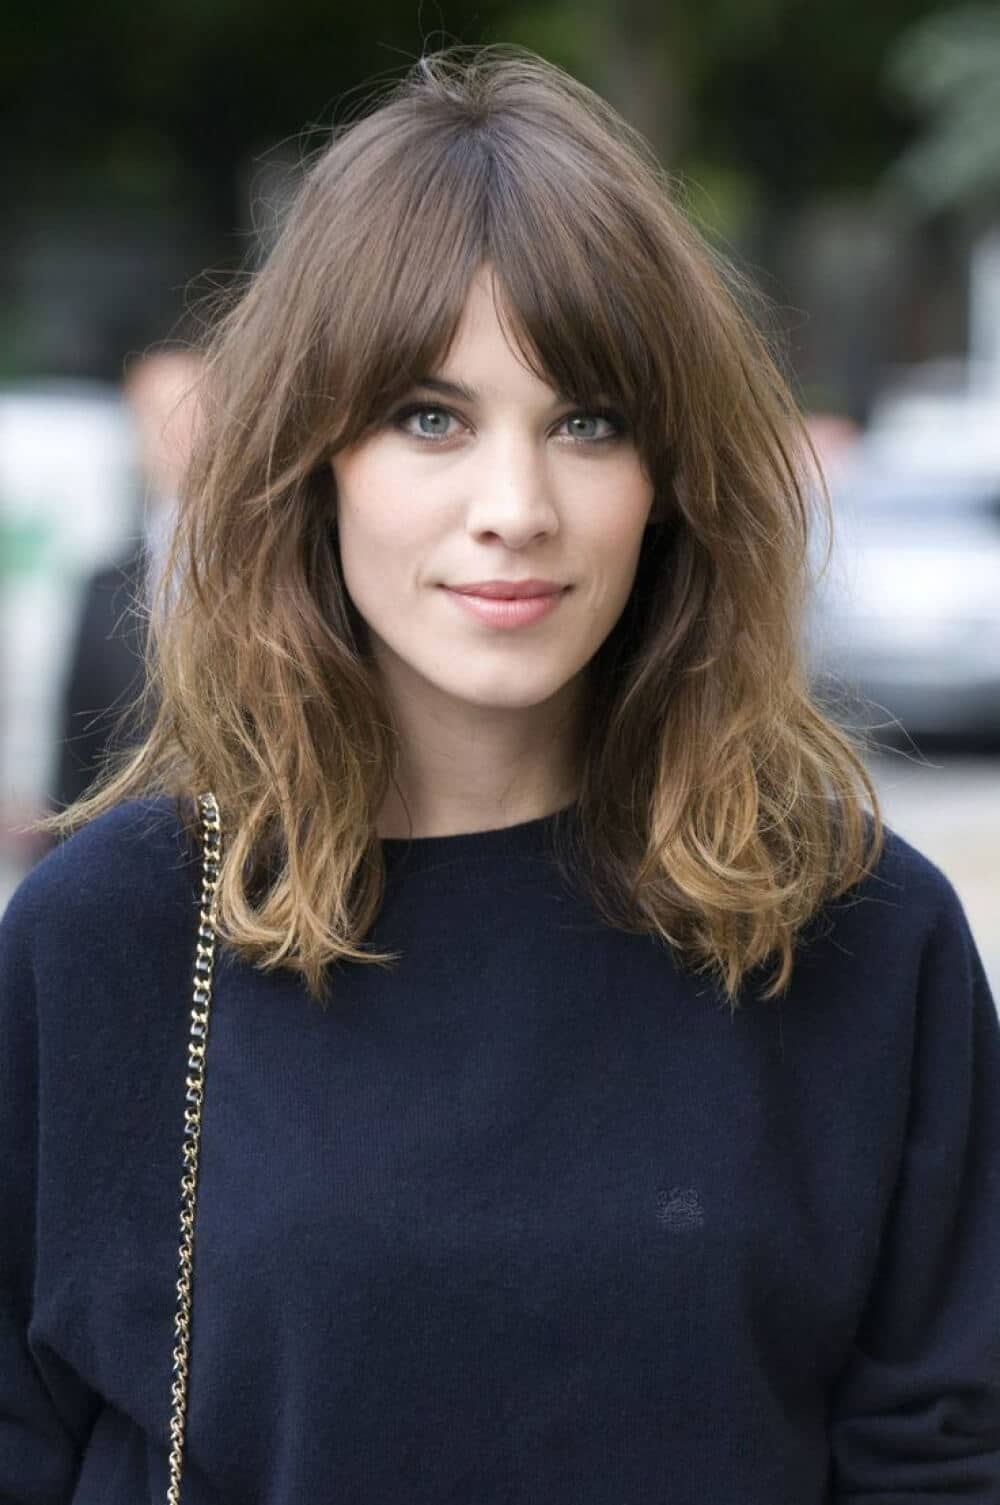 11 Breezy Hairstyles with Bangs to Make You Shine in 11